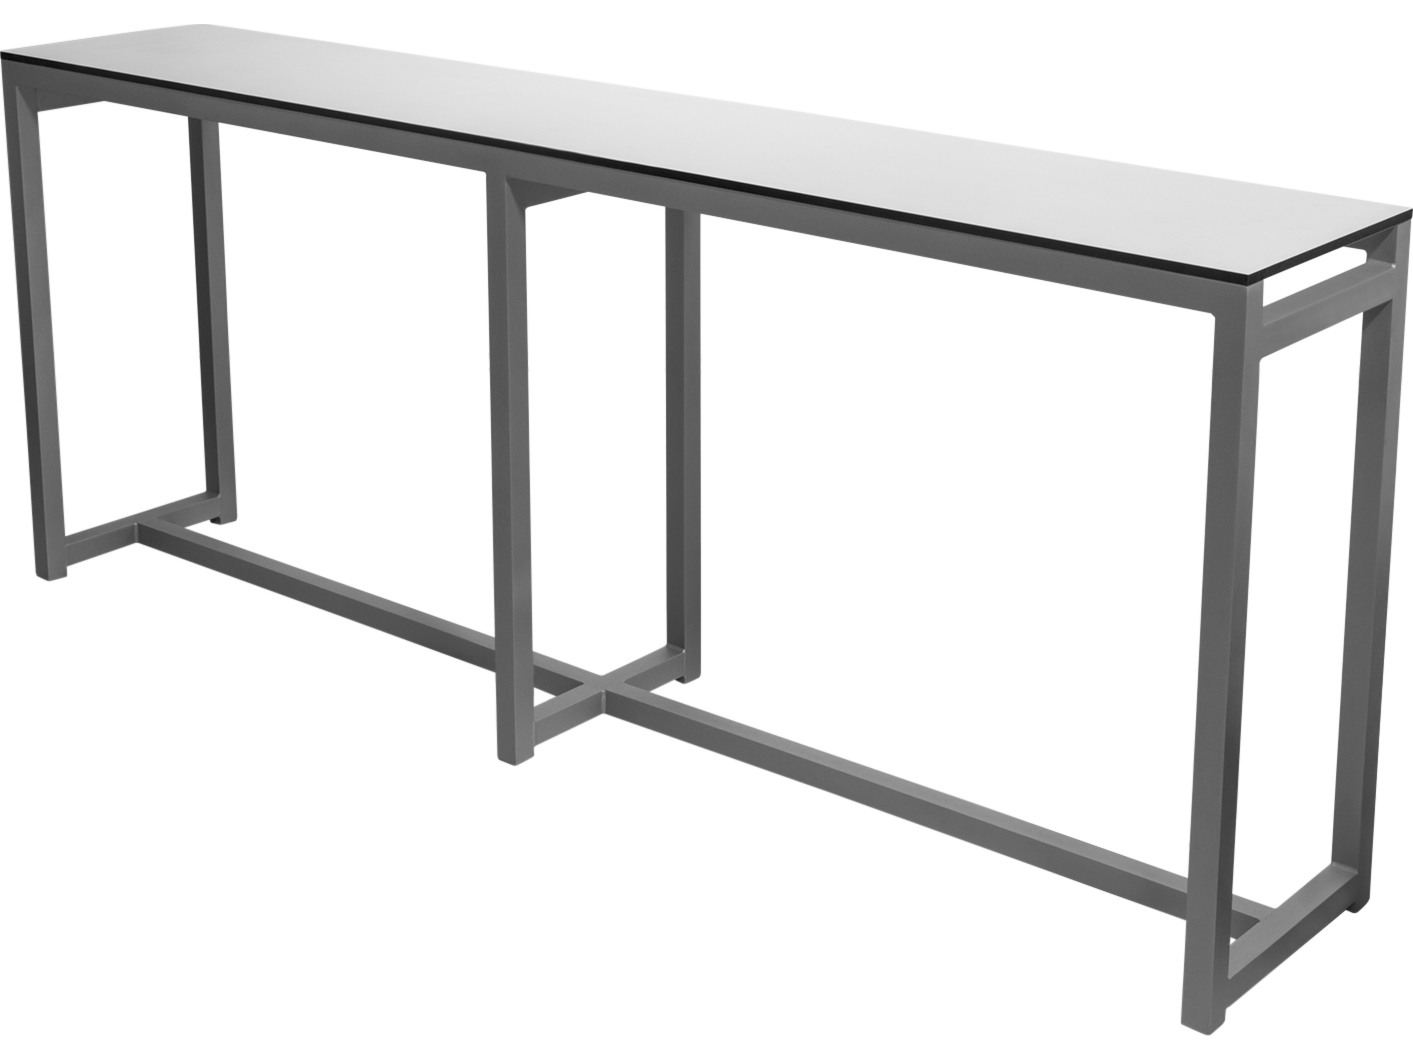 Picture of: Source Outdoor Furniture Modera Aluminum 89 W X 16 D Rectangular Drink Rail Console Table Scsf3203932